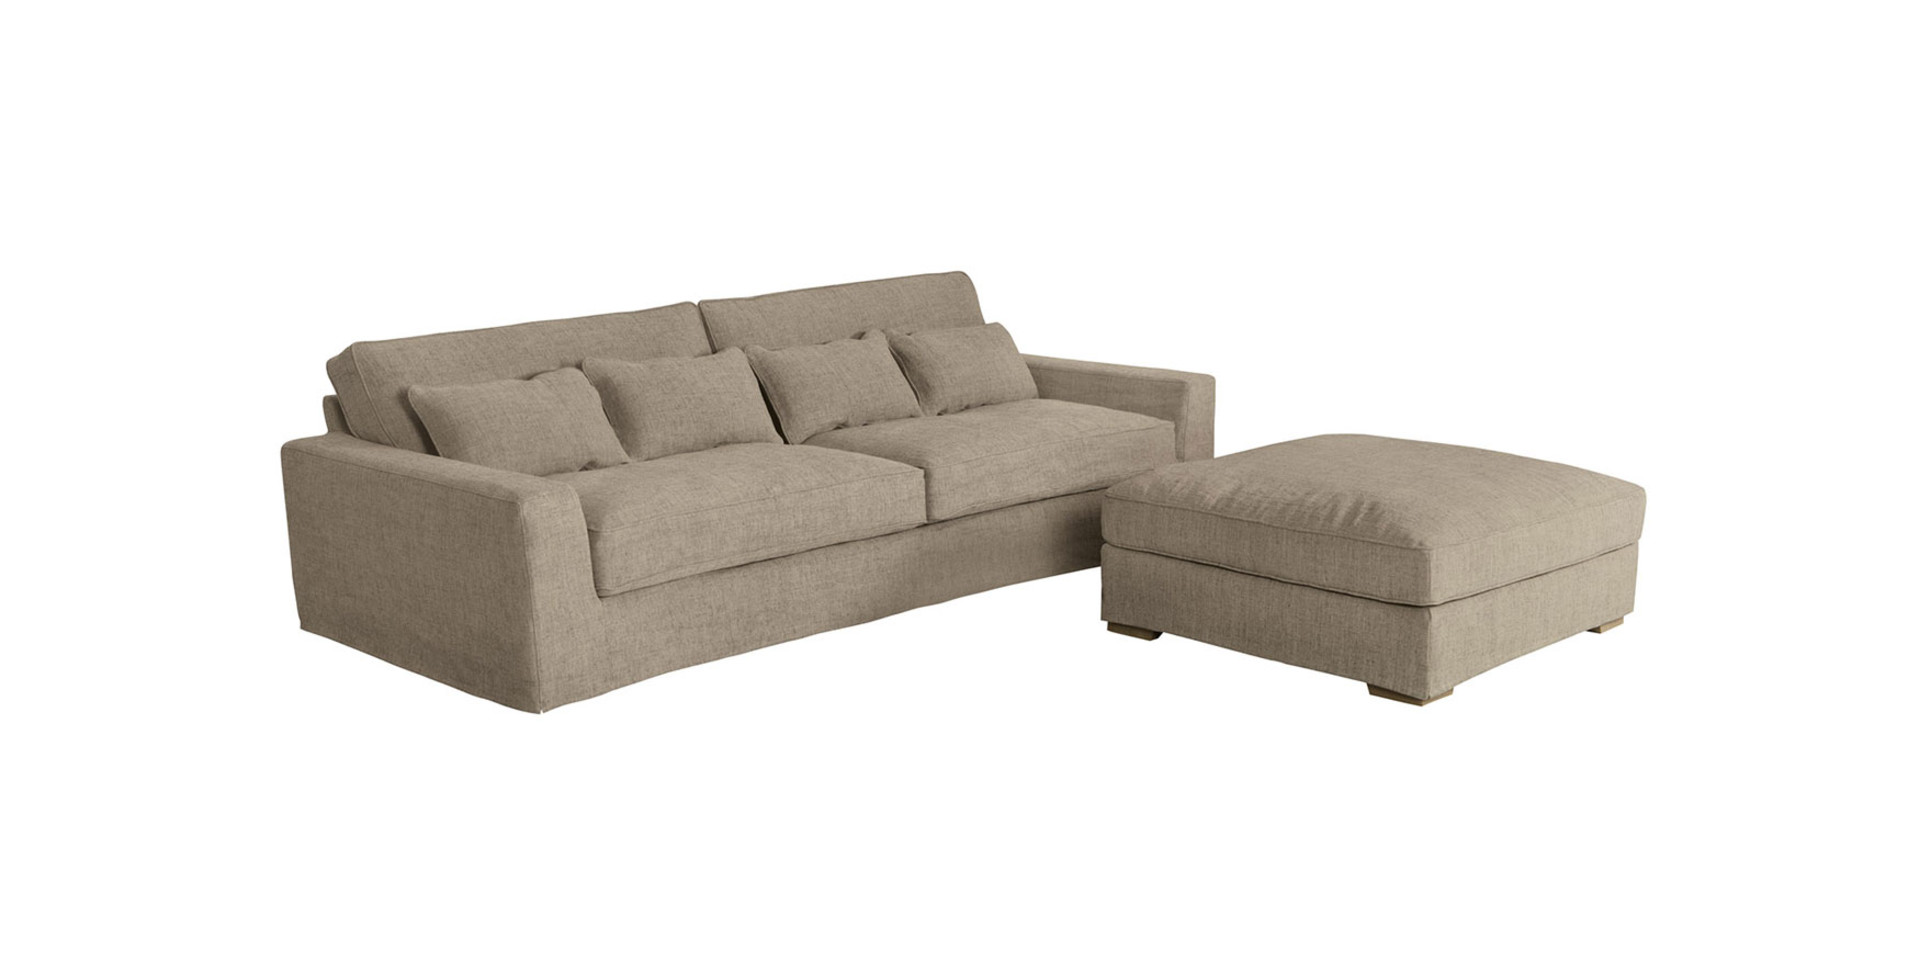 sits-newyork-pouf-4seater_footstool_linen_l616_006_grain_6